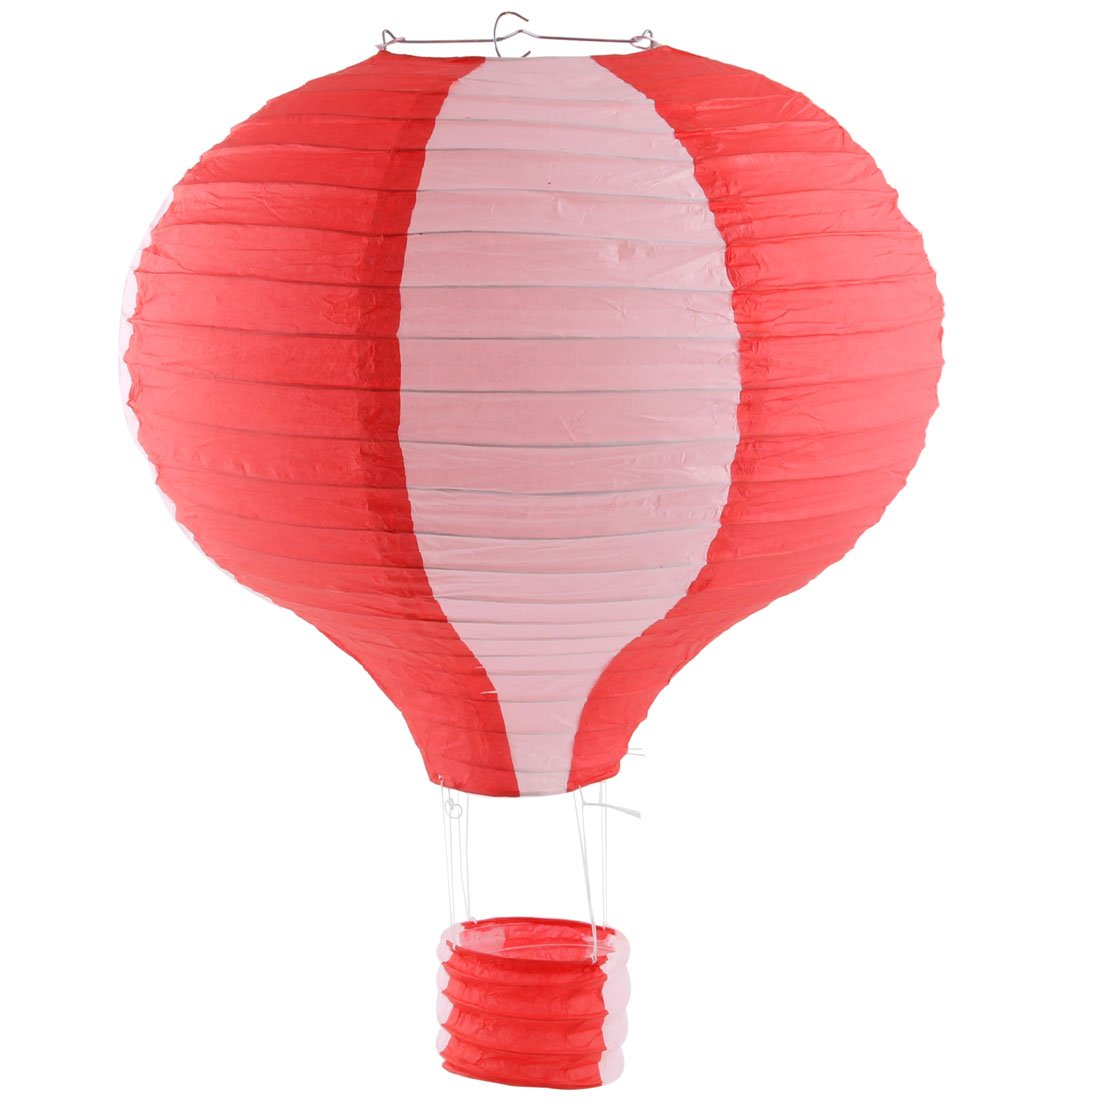 uxcell Paper Household Party Lightless Hanging DIY Decor Hot Air Balloon Lantern 16 Inch Dia Red White